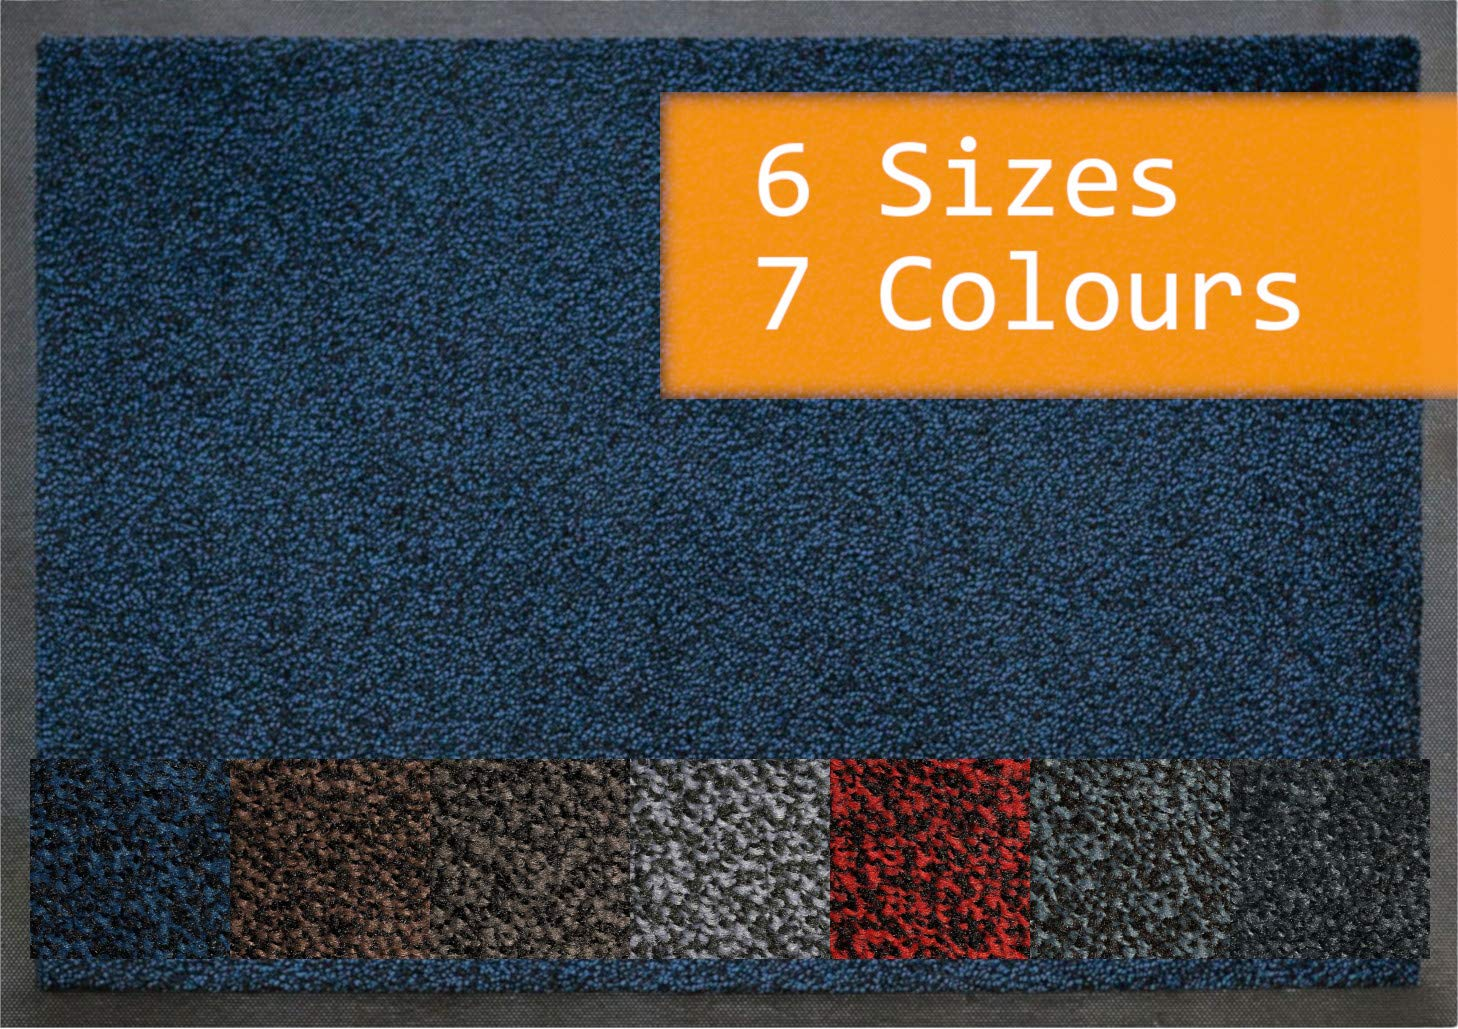 The No 1 Commercial Door Mat 60 x 85 cm Morland Access Duo NITRILE RUBBER BACKING Black Blue